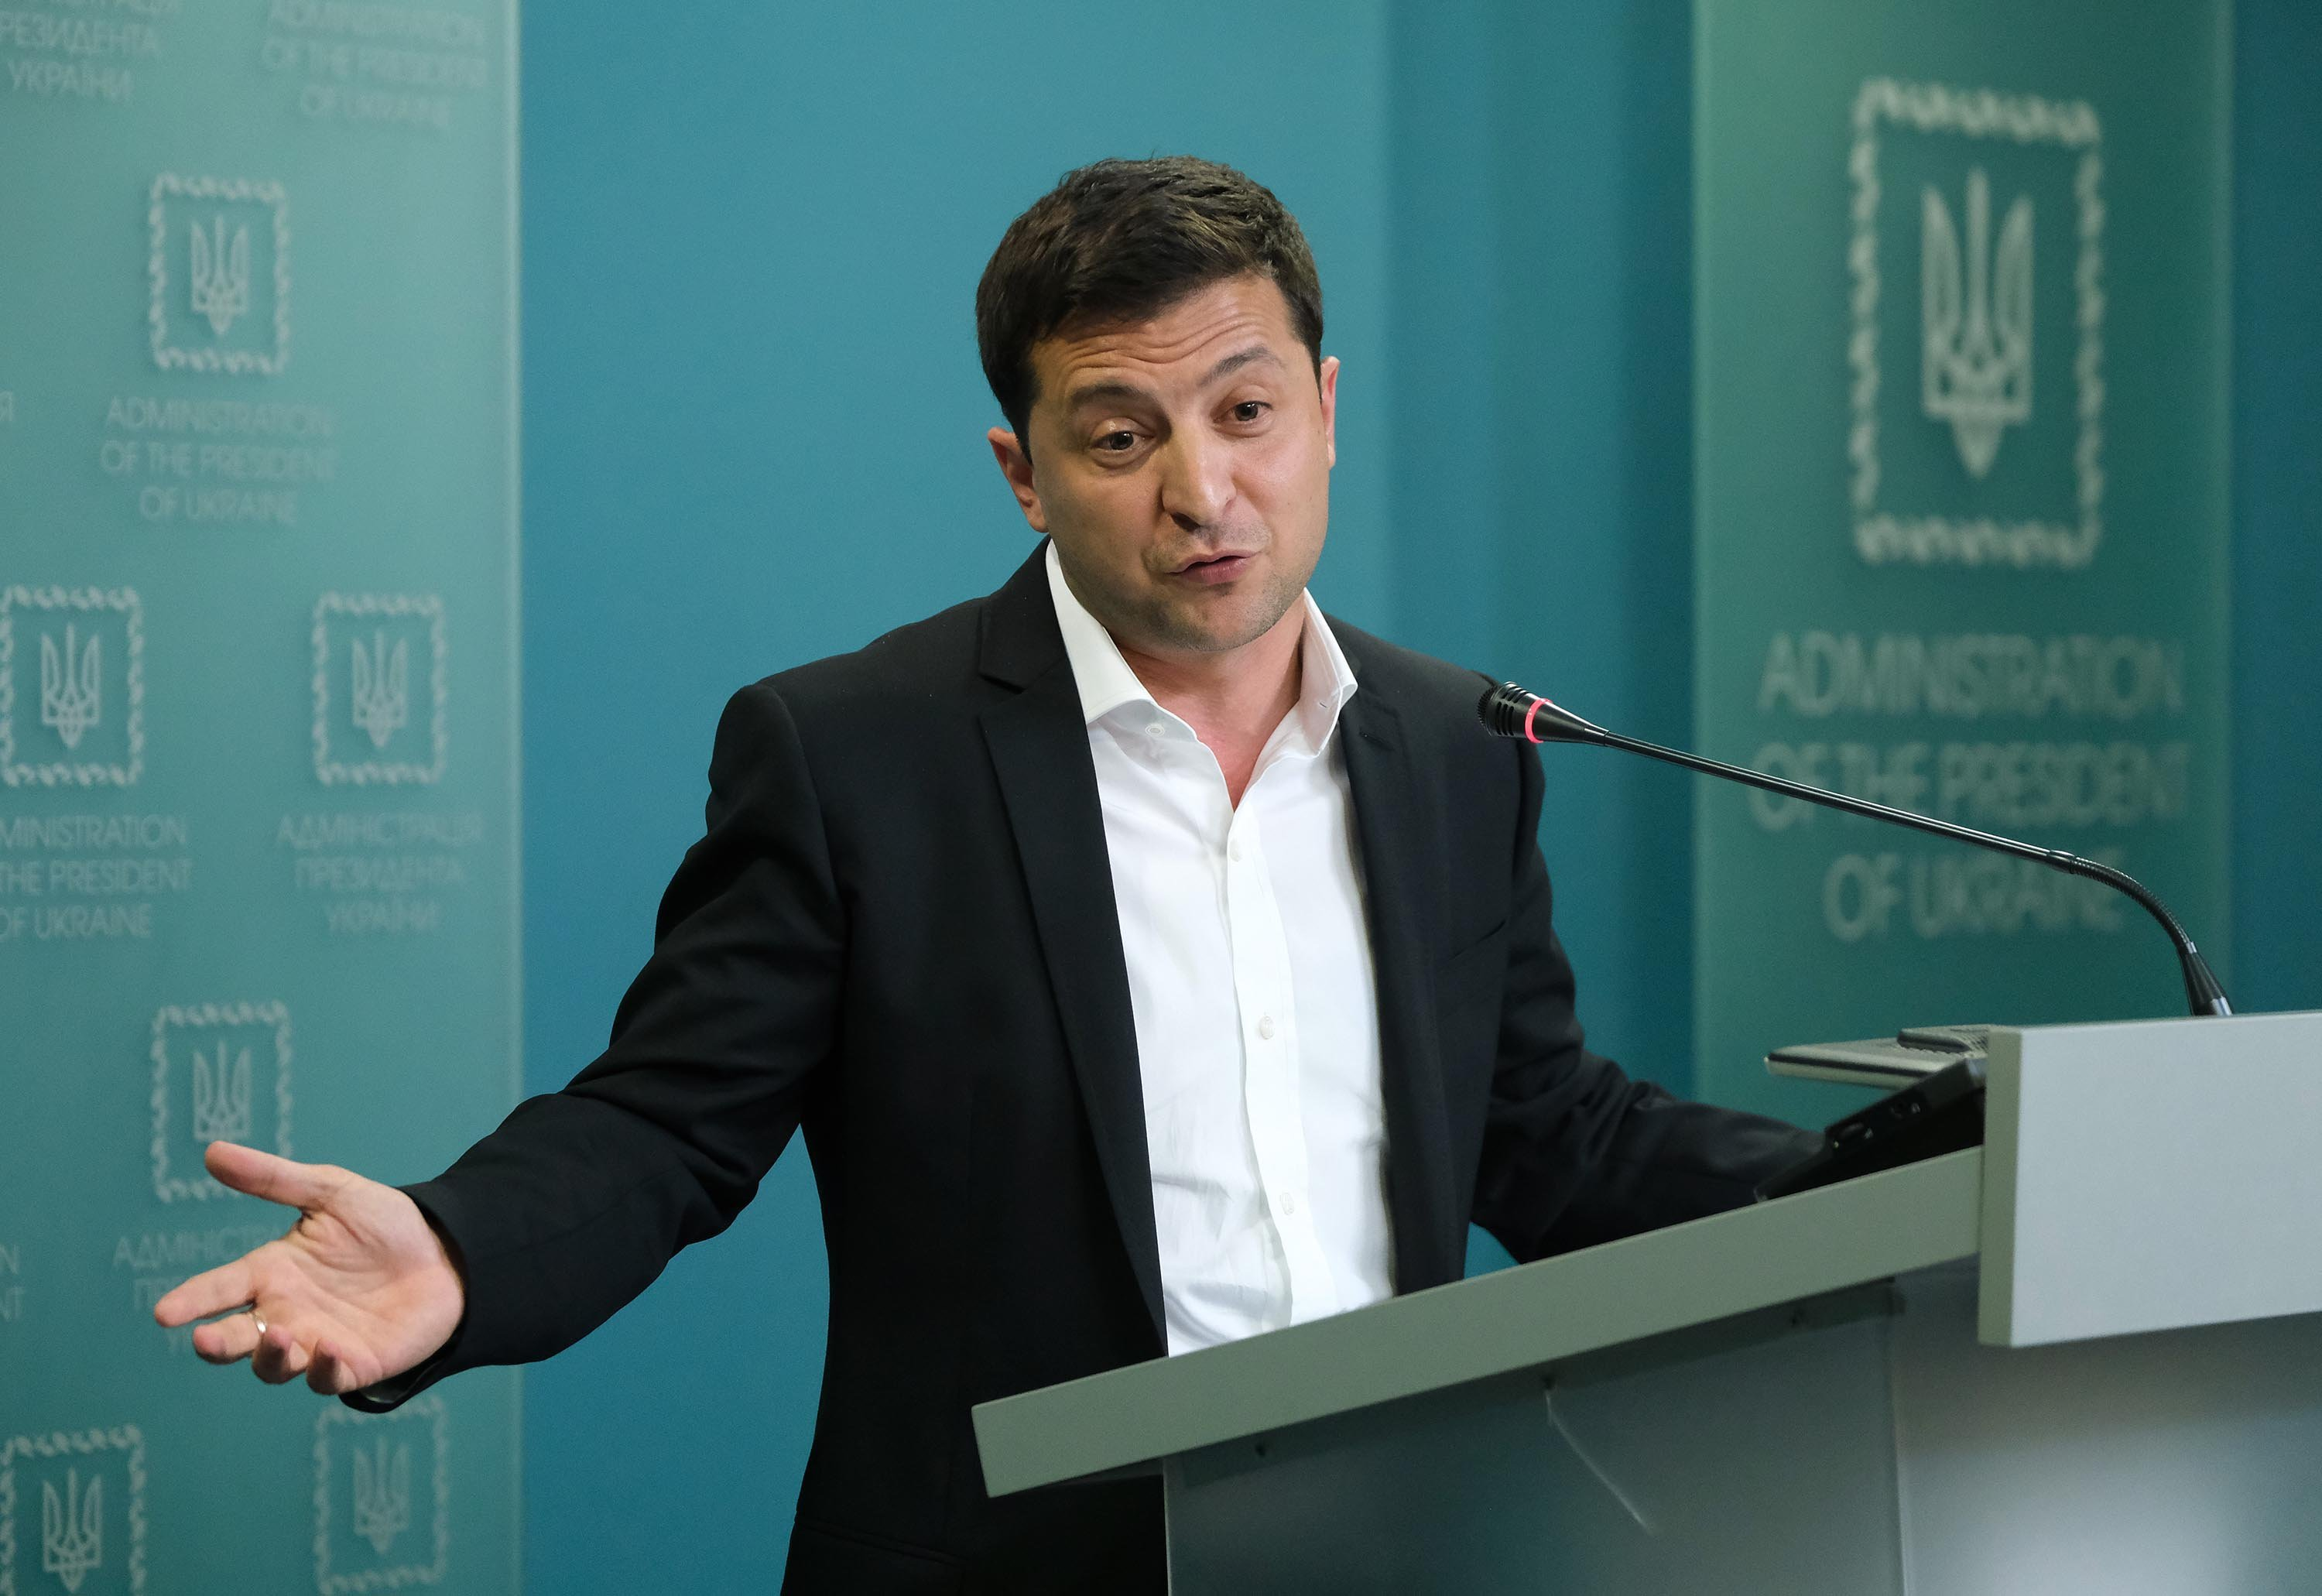 Everyone in Ukraine is 'so tired' of hearing about Burisma, Zelensky tells CNN